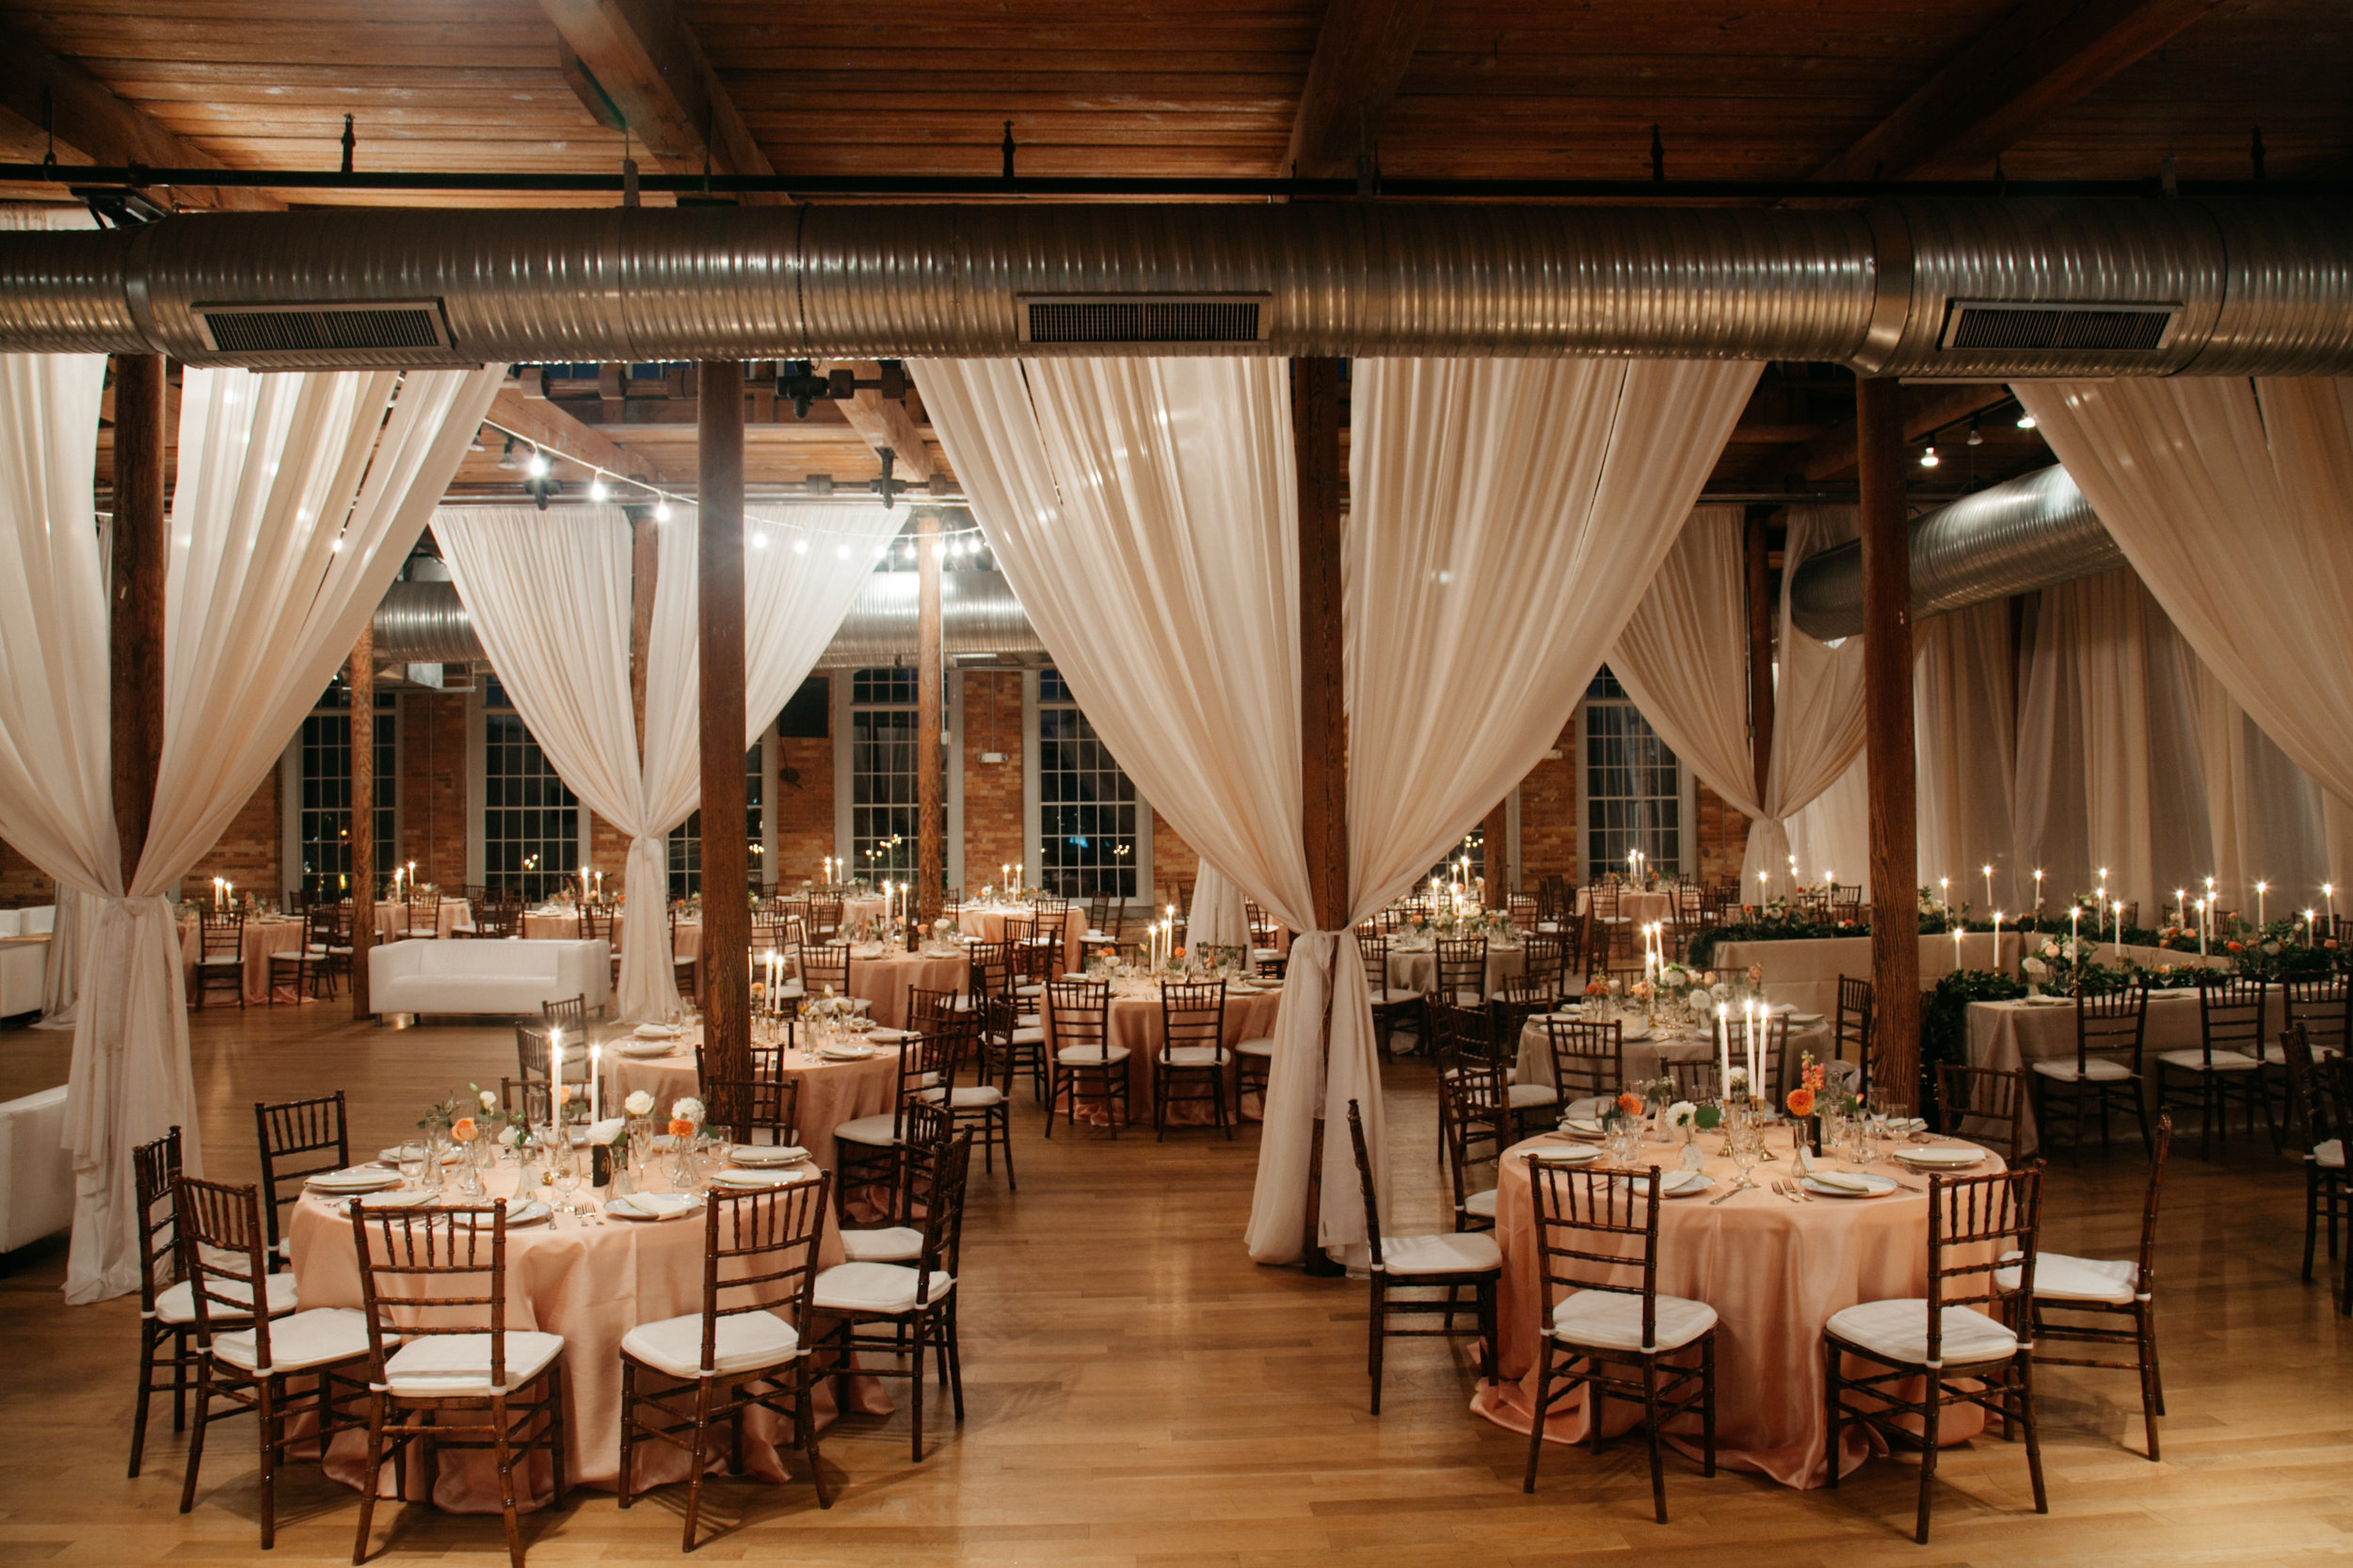 Tailored Occasions Is A Wedding And Event Planning Team Located In North Carolina Offering Management Design For Lifes Greatest Milestones